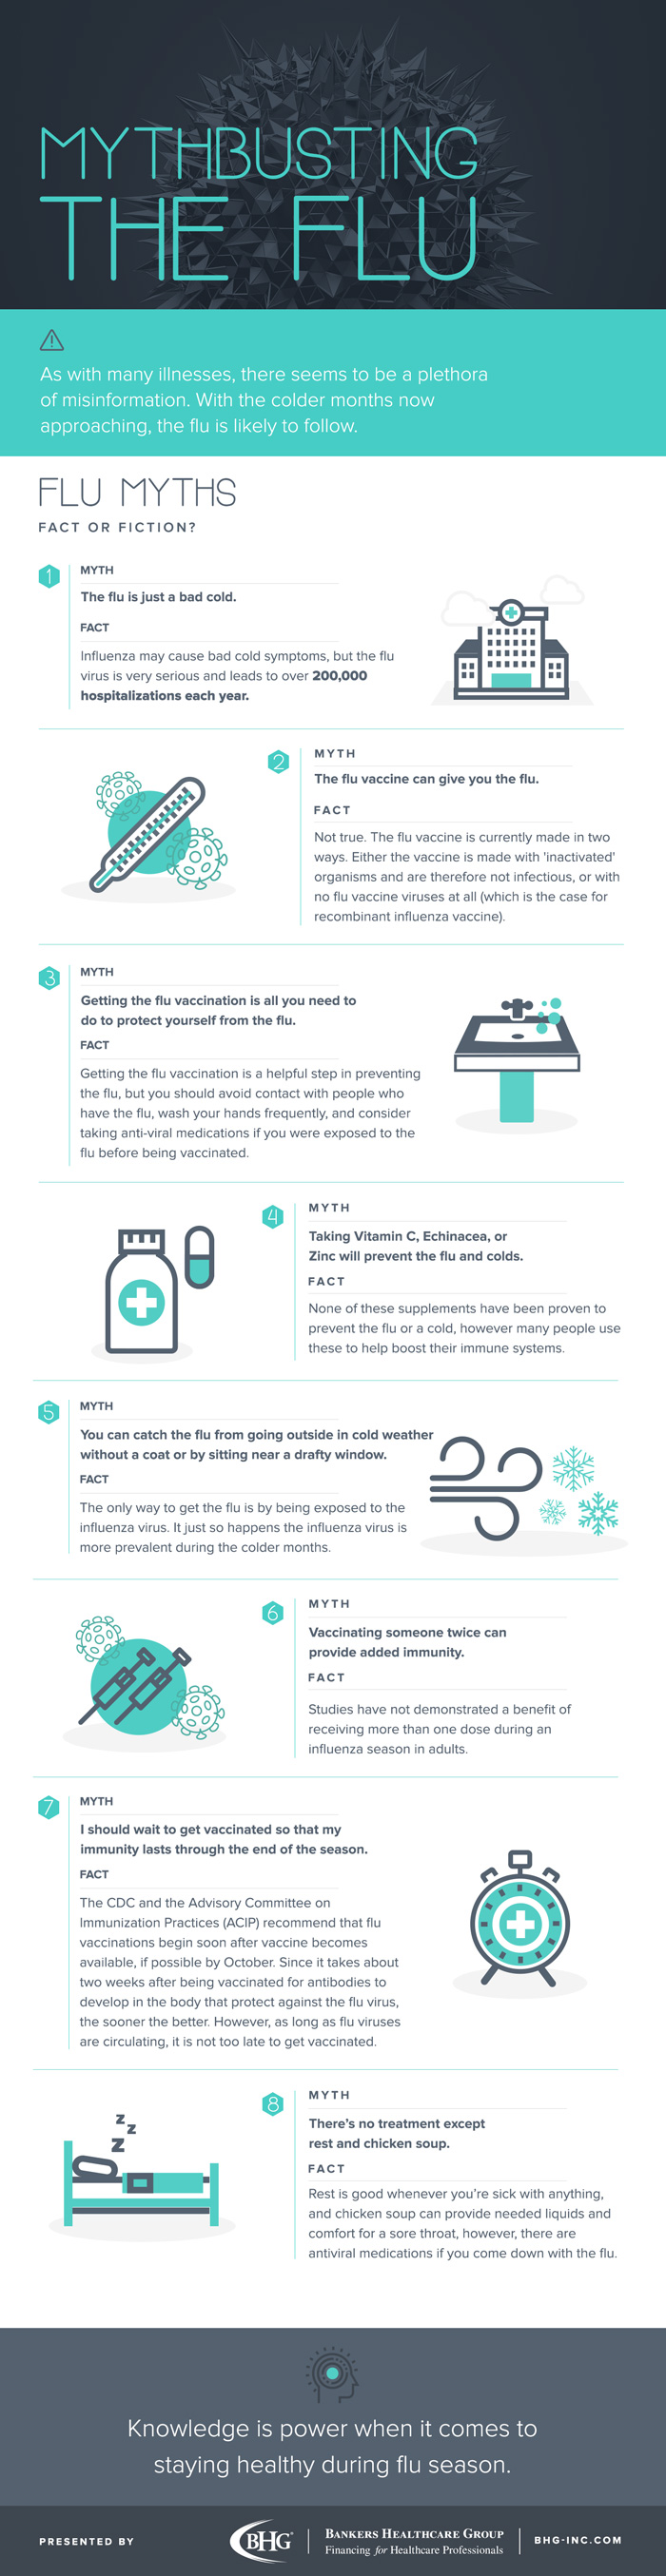 Cold and Flu popular Myths [Infographic] | ecogreenlove